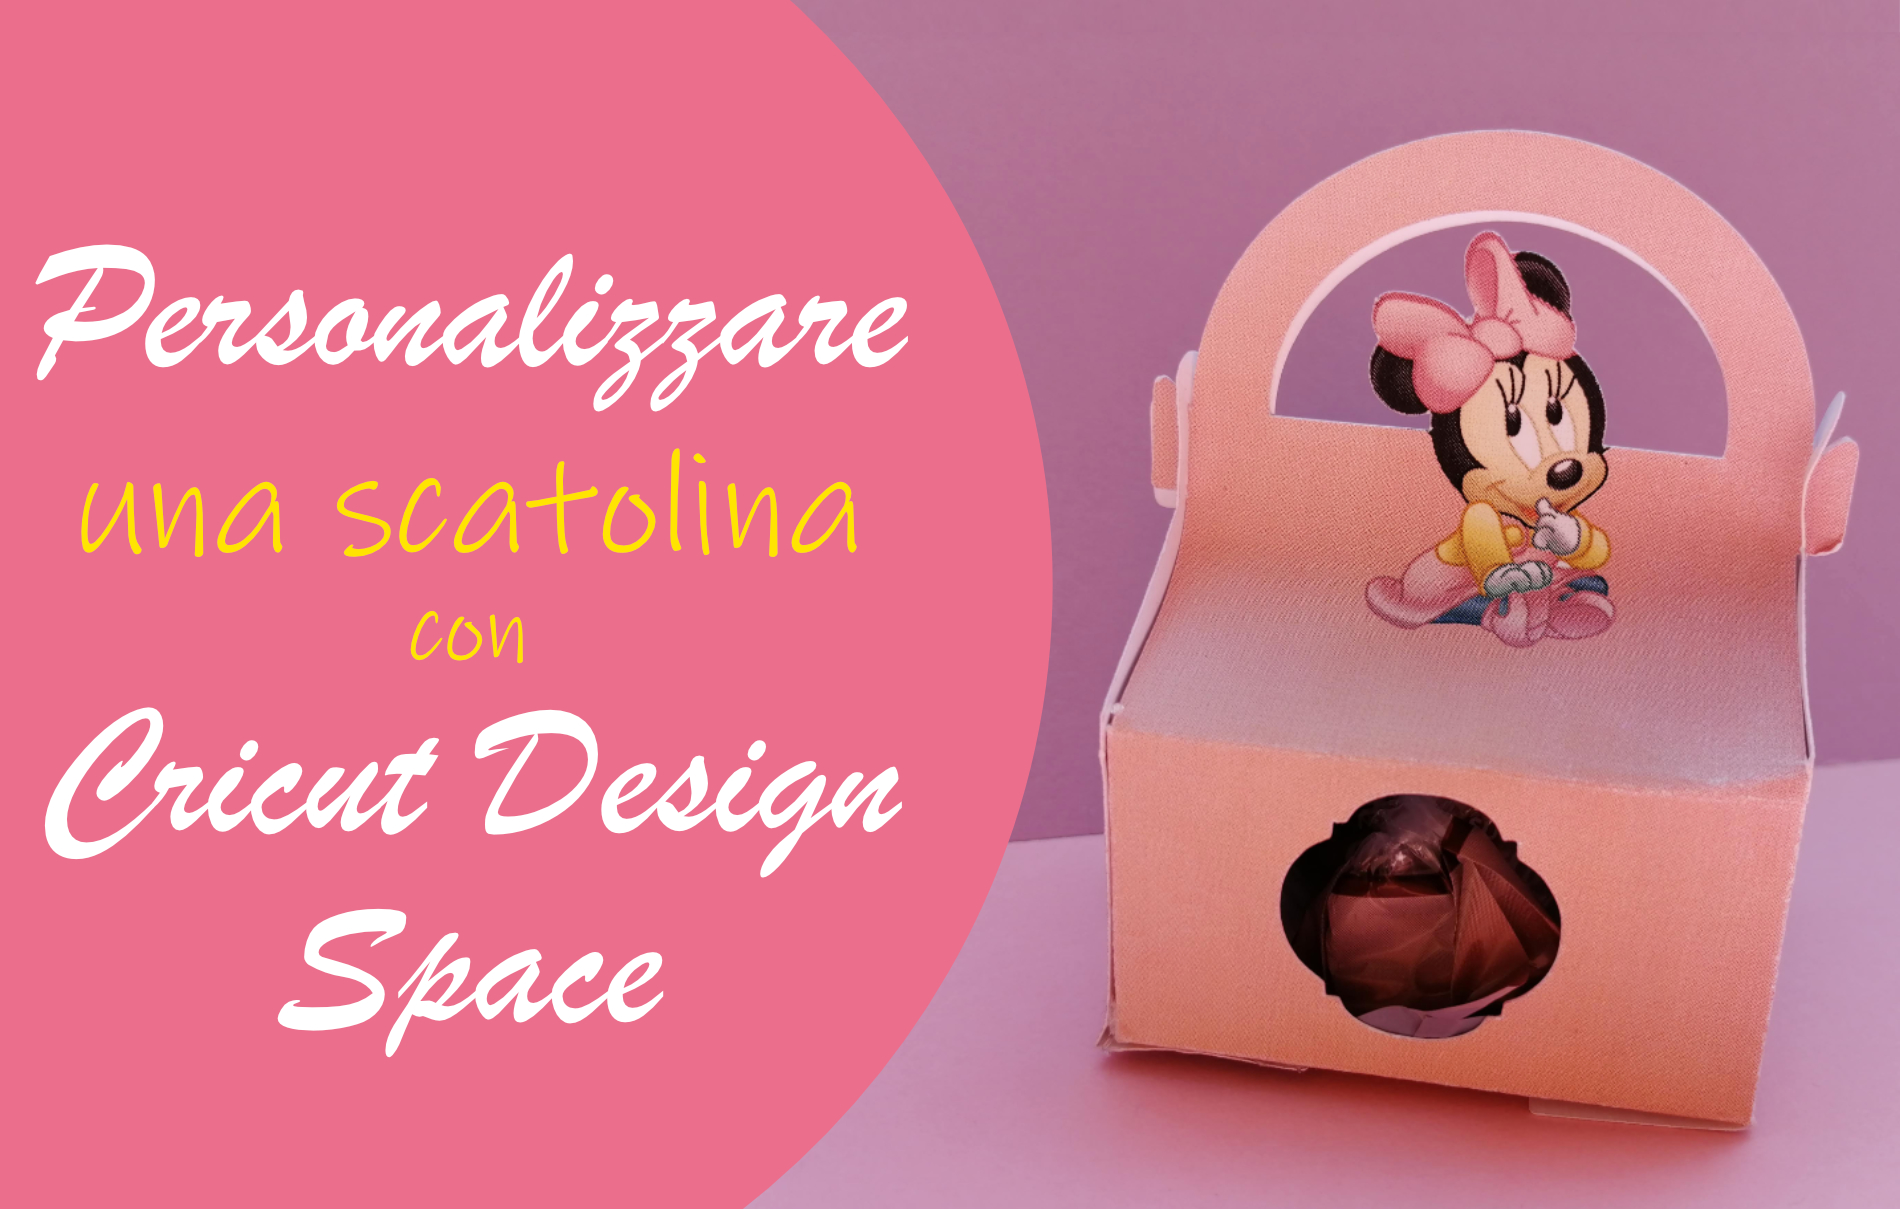 Personalizzare una scatolina con Cricut Design Space